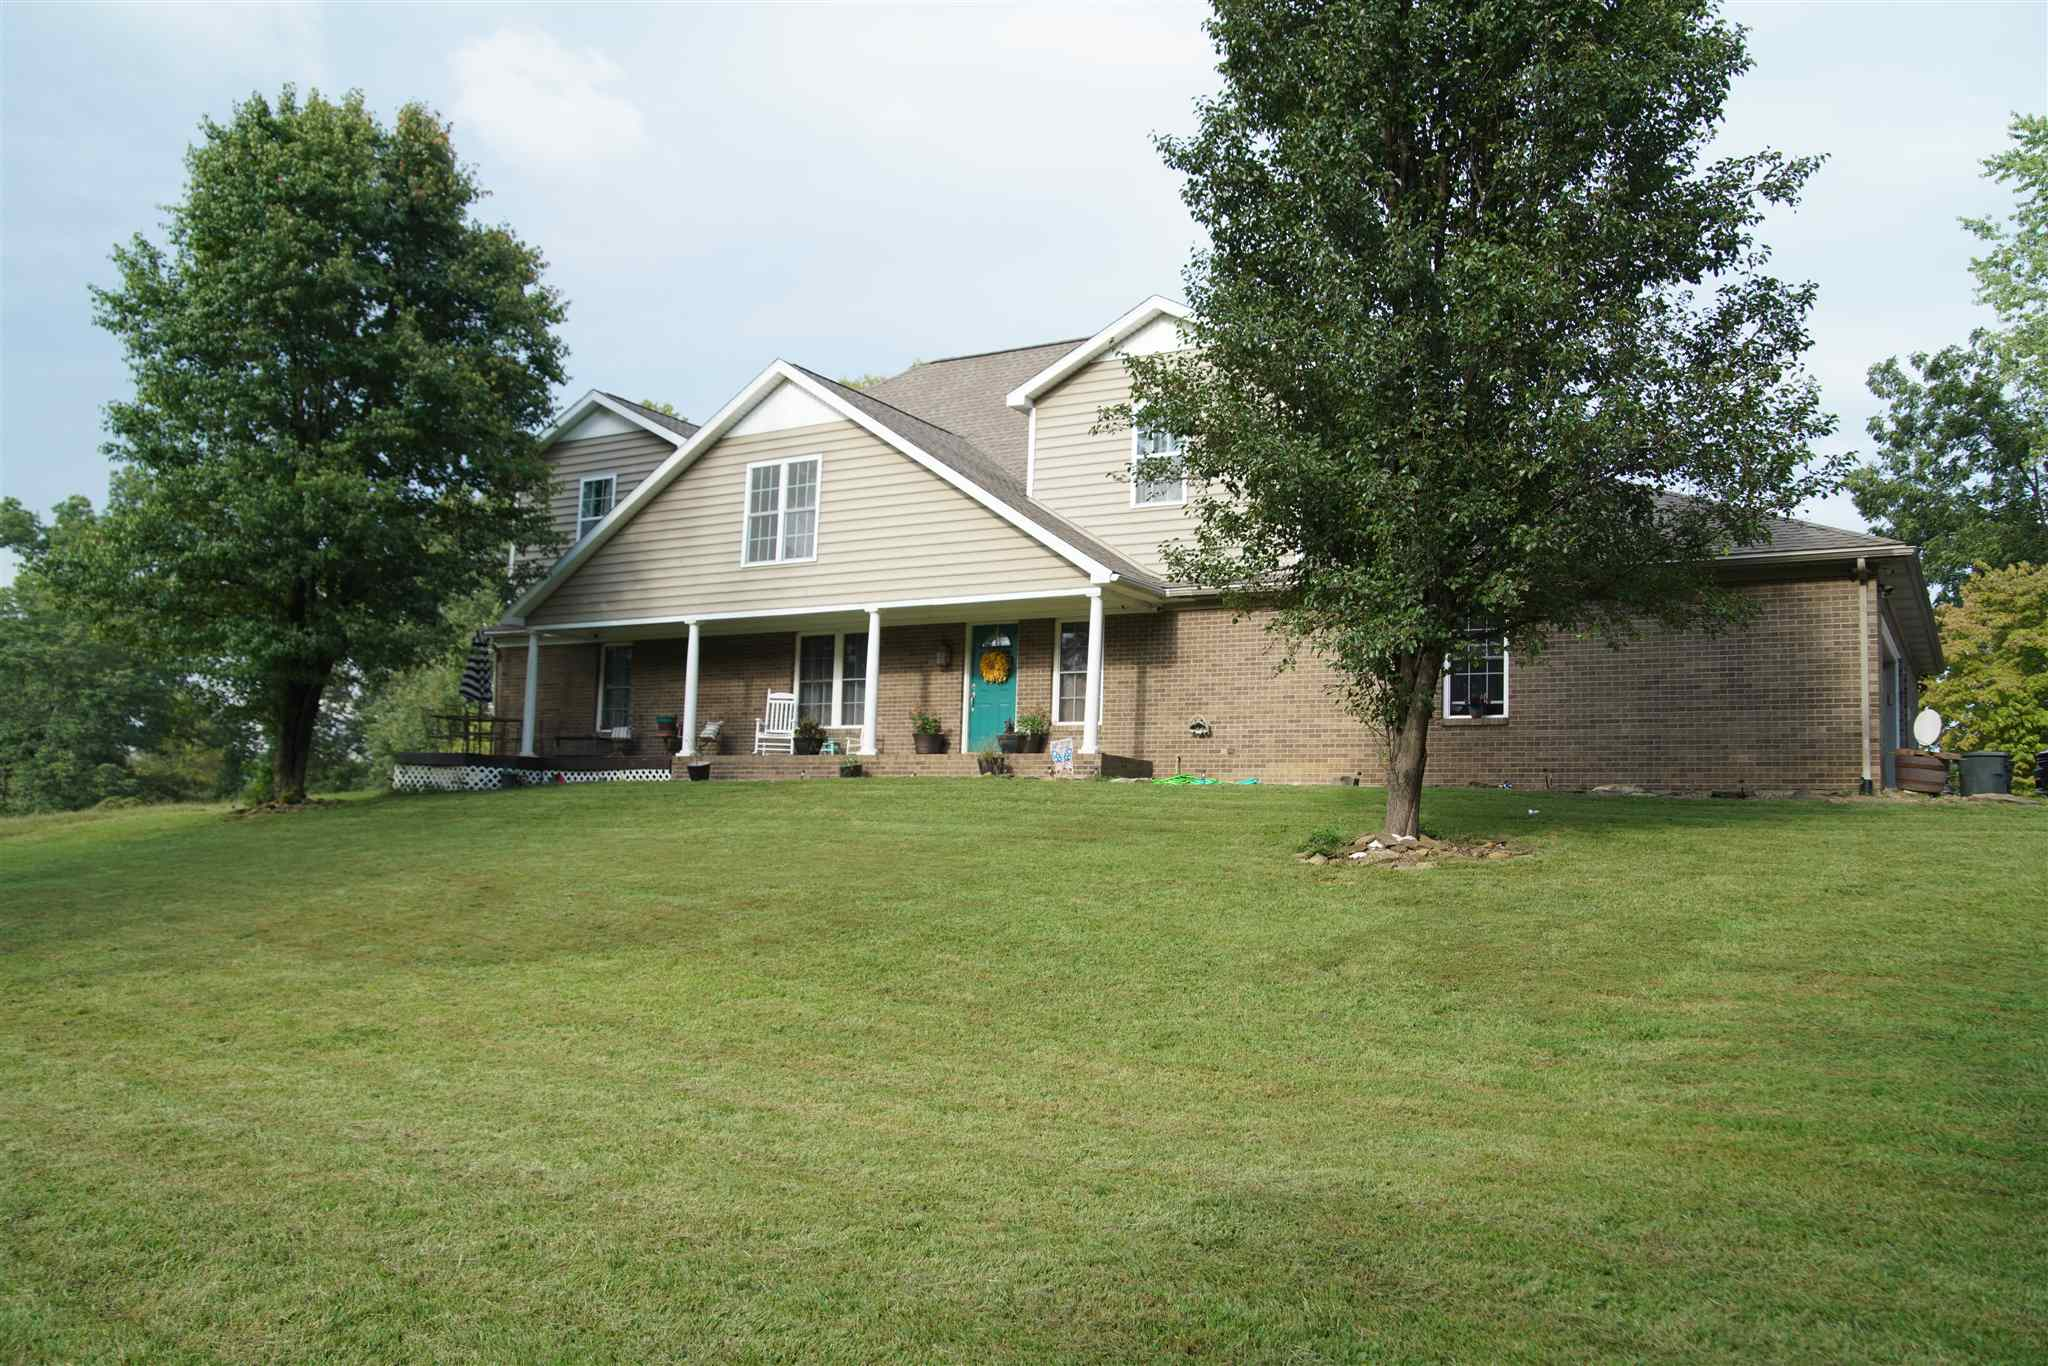 222 W Eble Rd, Boonville, IN 47716